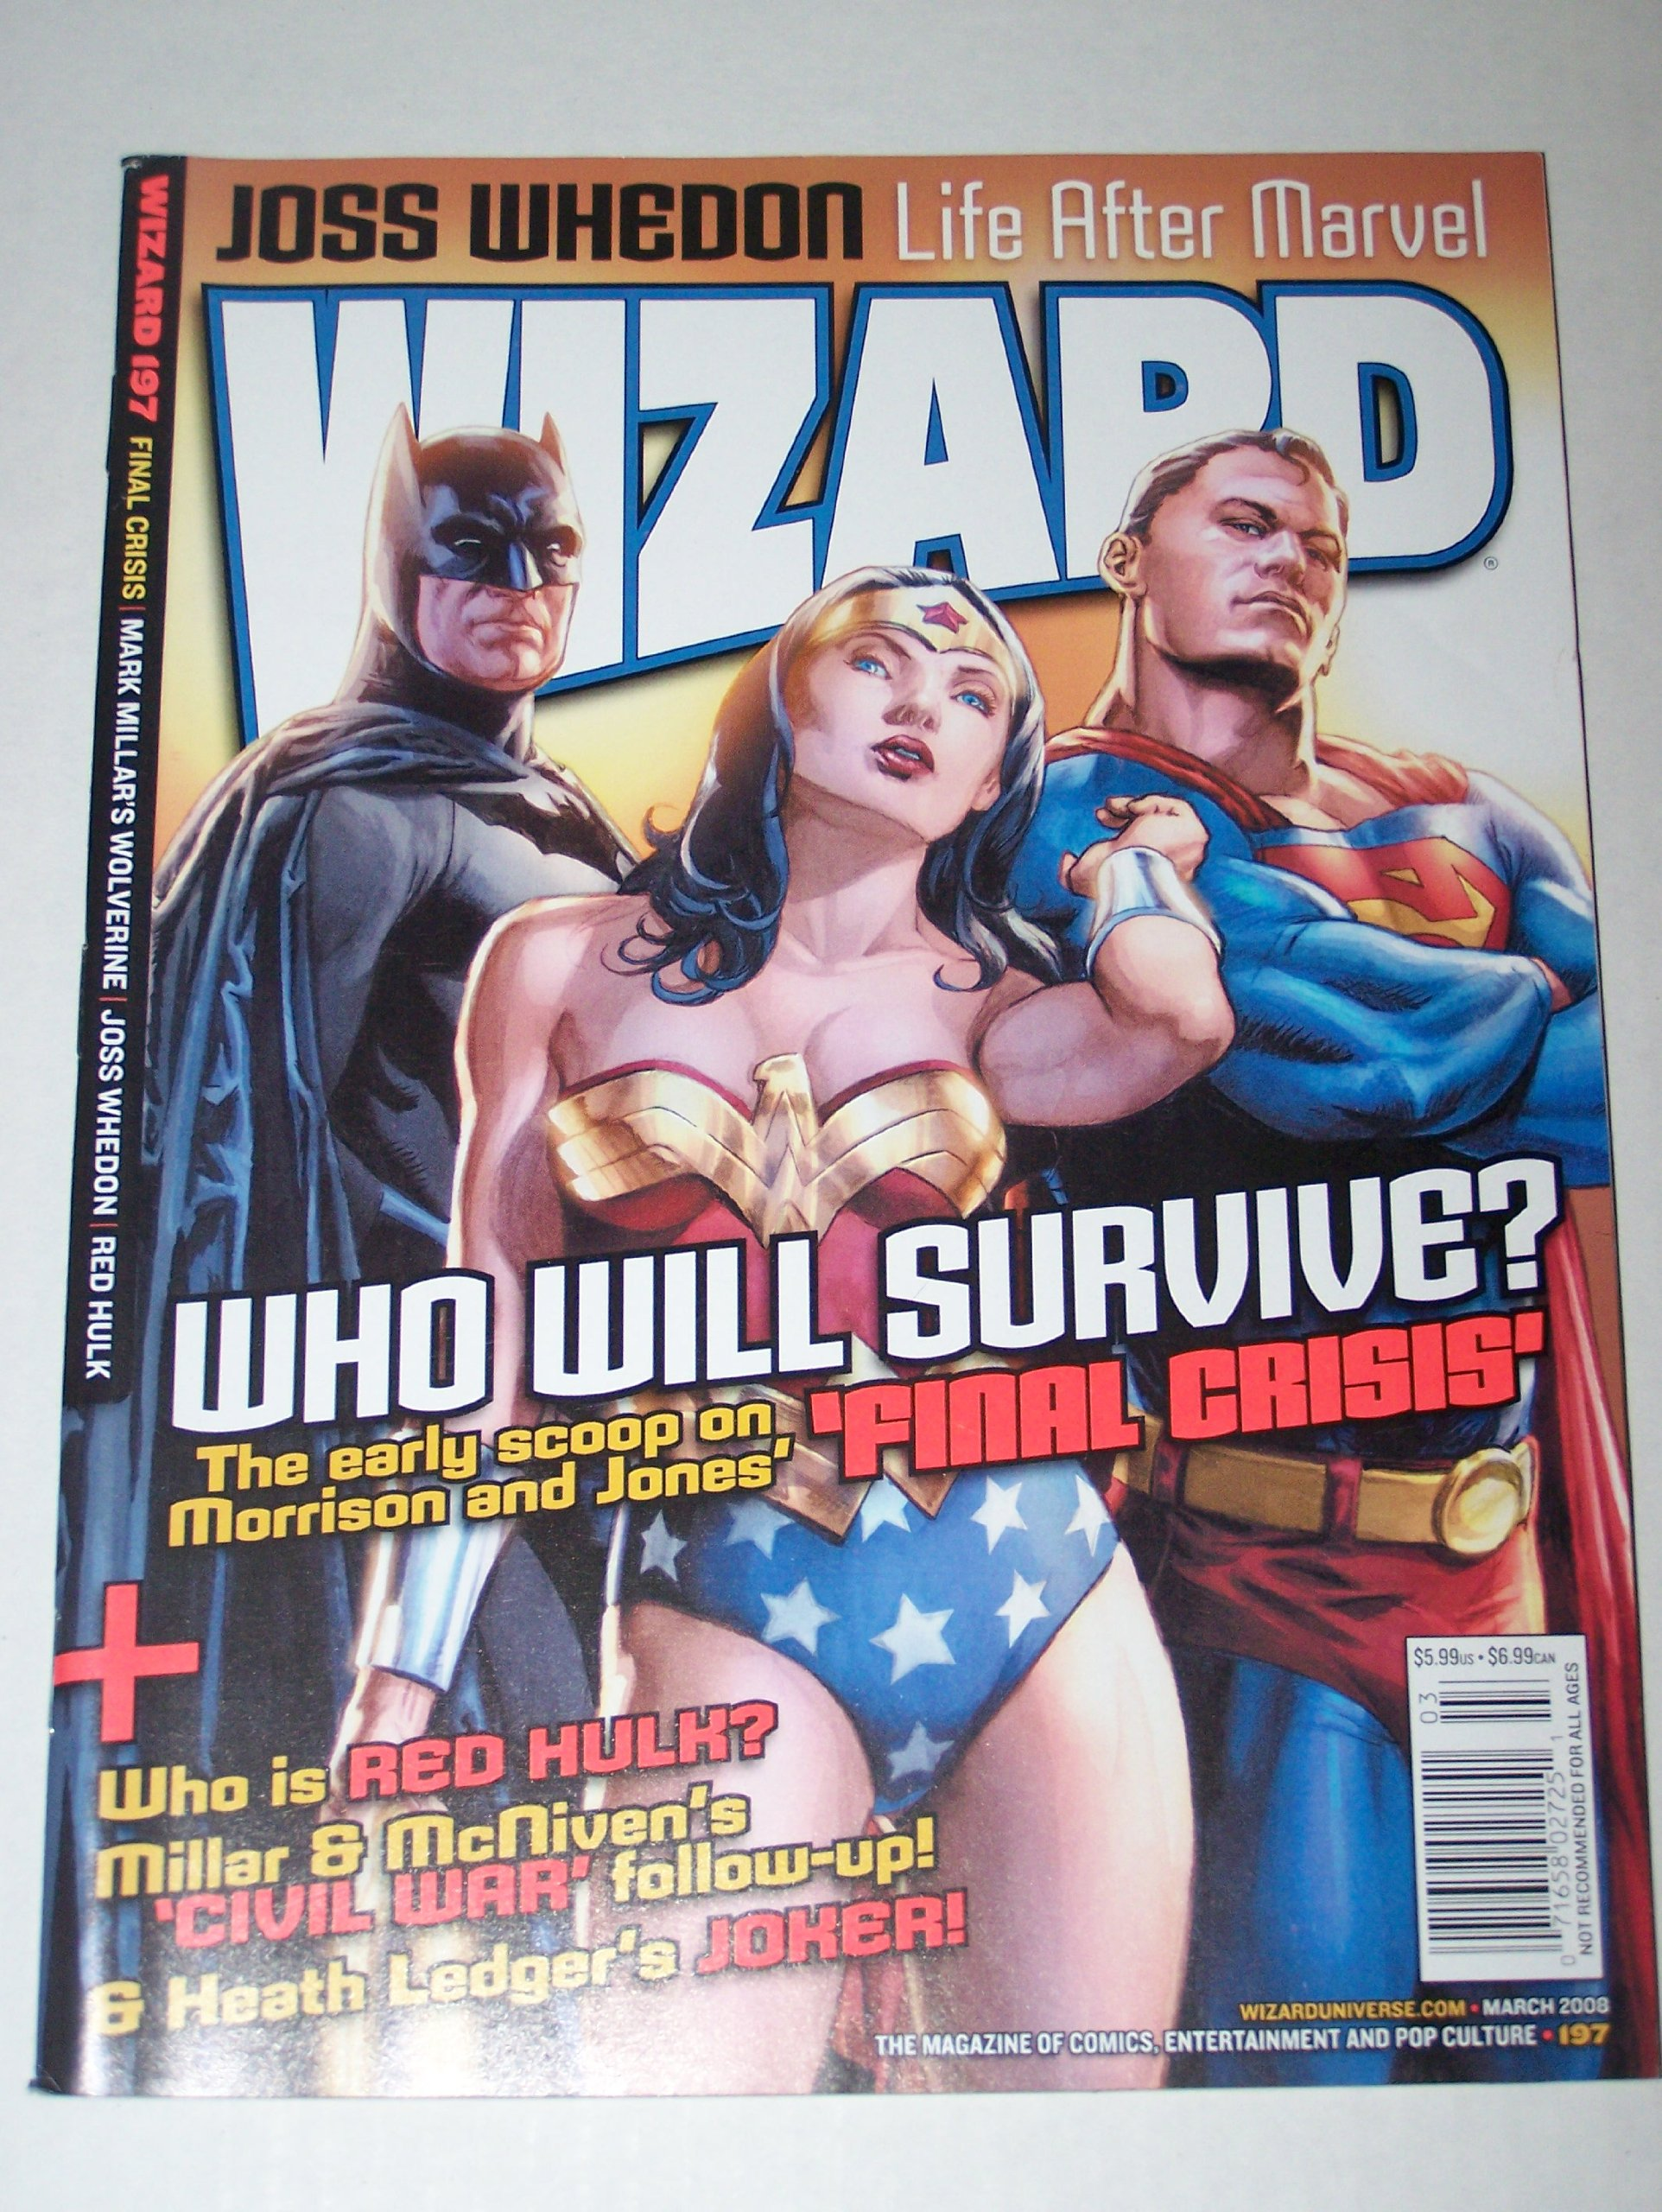 Wizard Magazine March 2008 Issue 197 Who Will Survive? Final Crisis Batman, Wonder Woman, Superman, The Early Scoop on Morrision and Jones', Who is Red Hulk?, Mark Millar & McNiven's Civil War Follow-up, Heath Ledger's Joker, Joss Whedon, Wolverine pdf epub